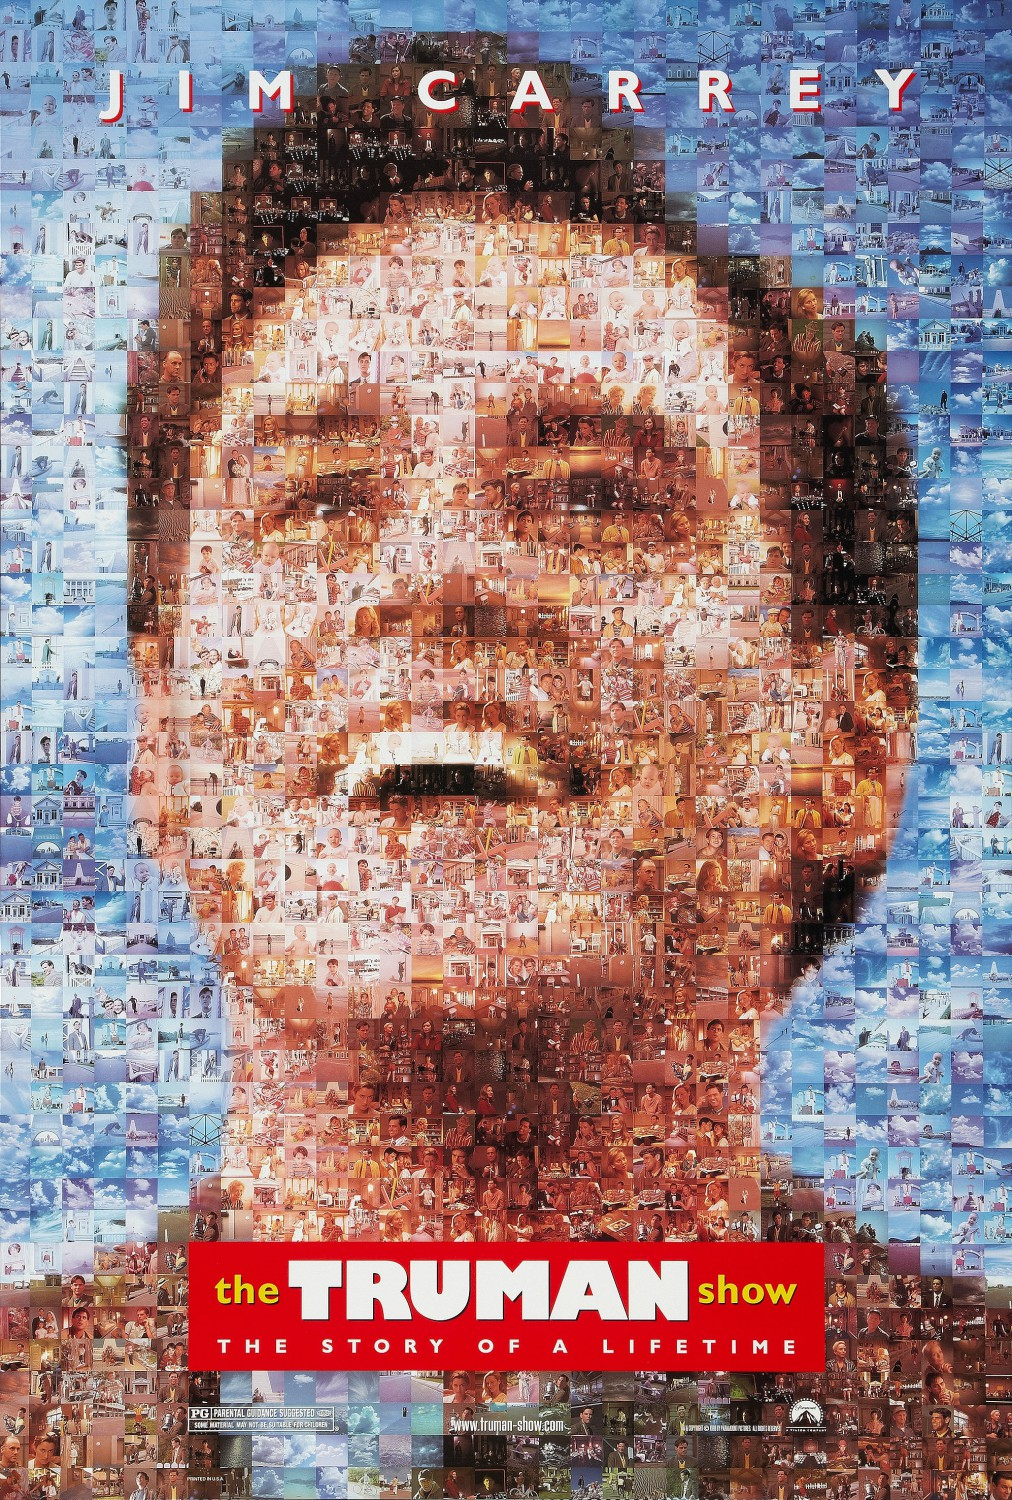 Return to Main Page for The Truman Show Posters